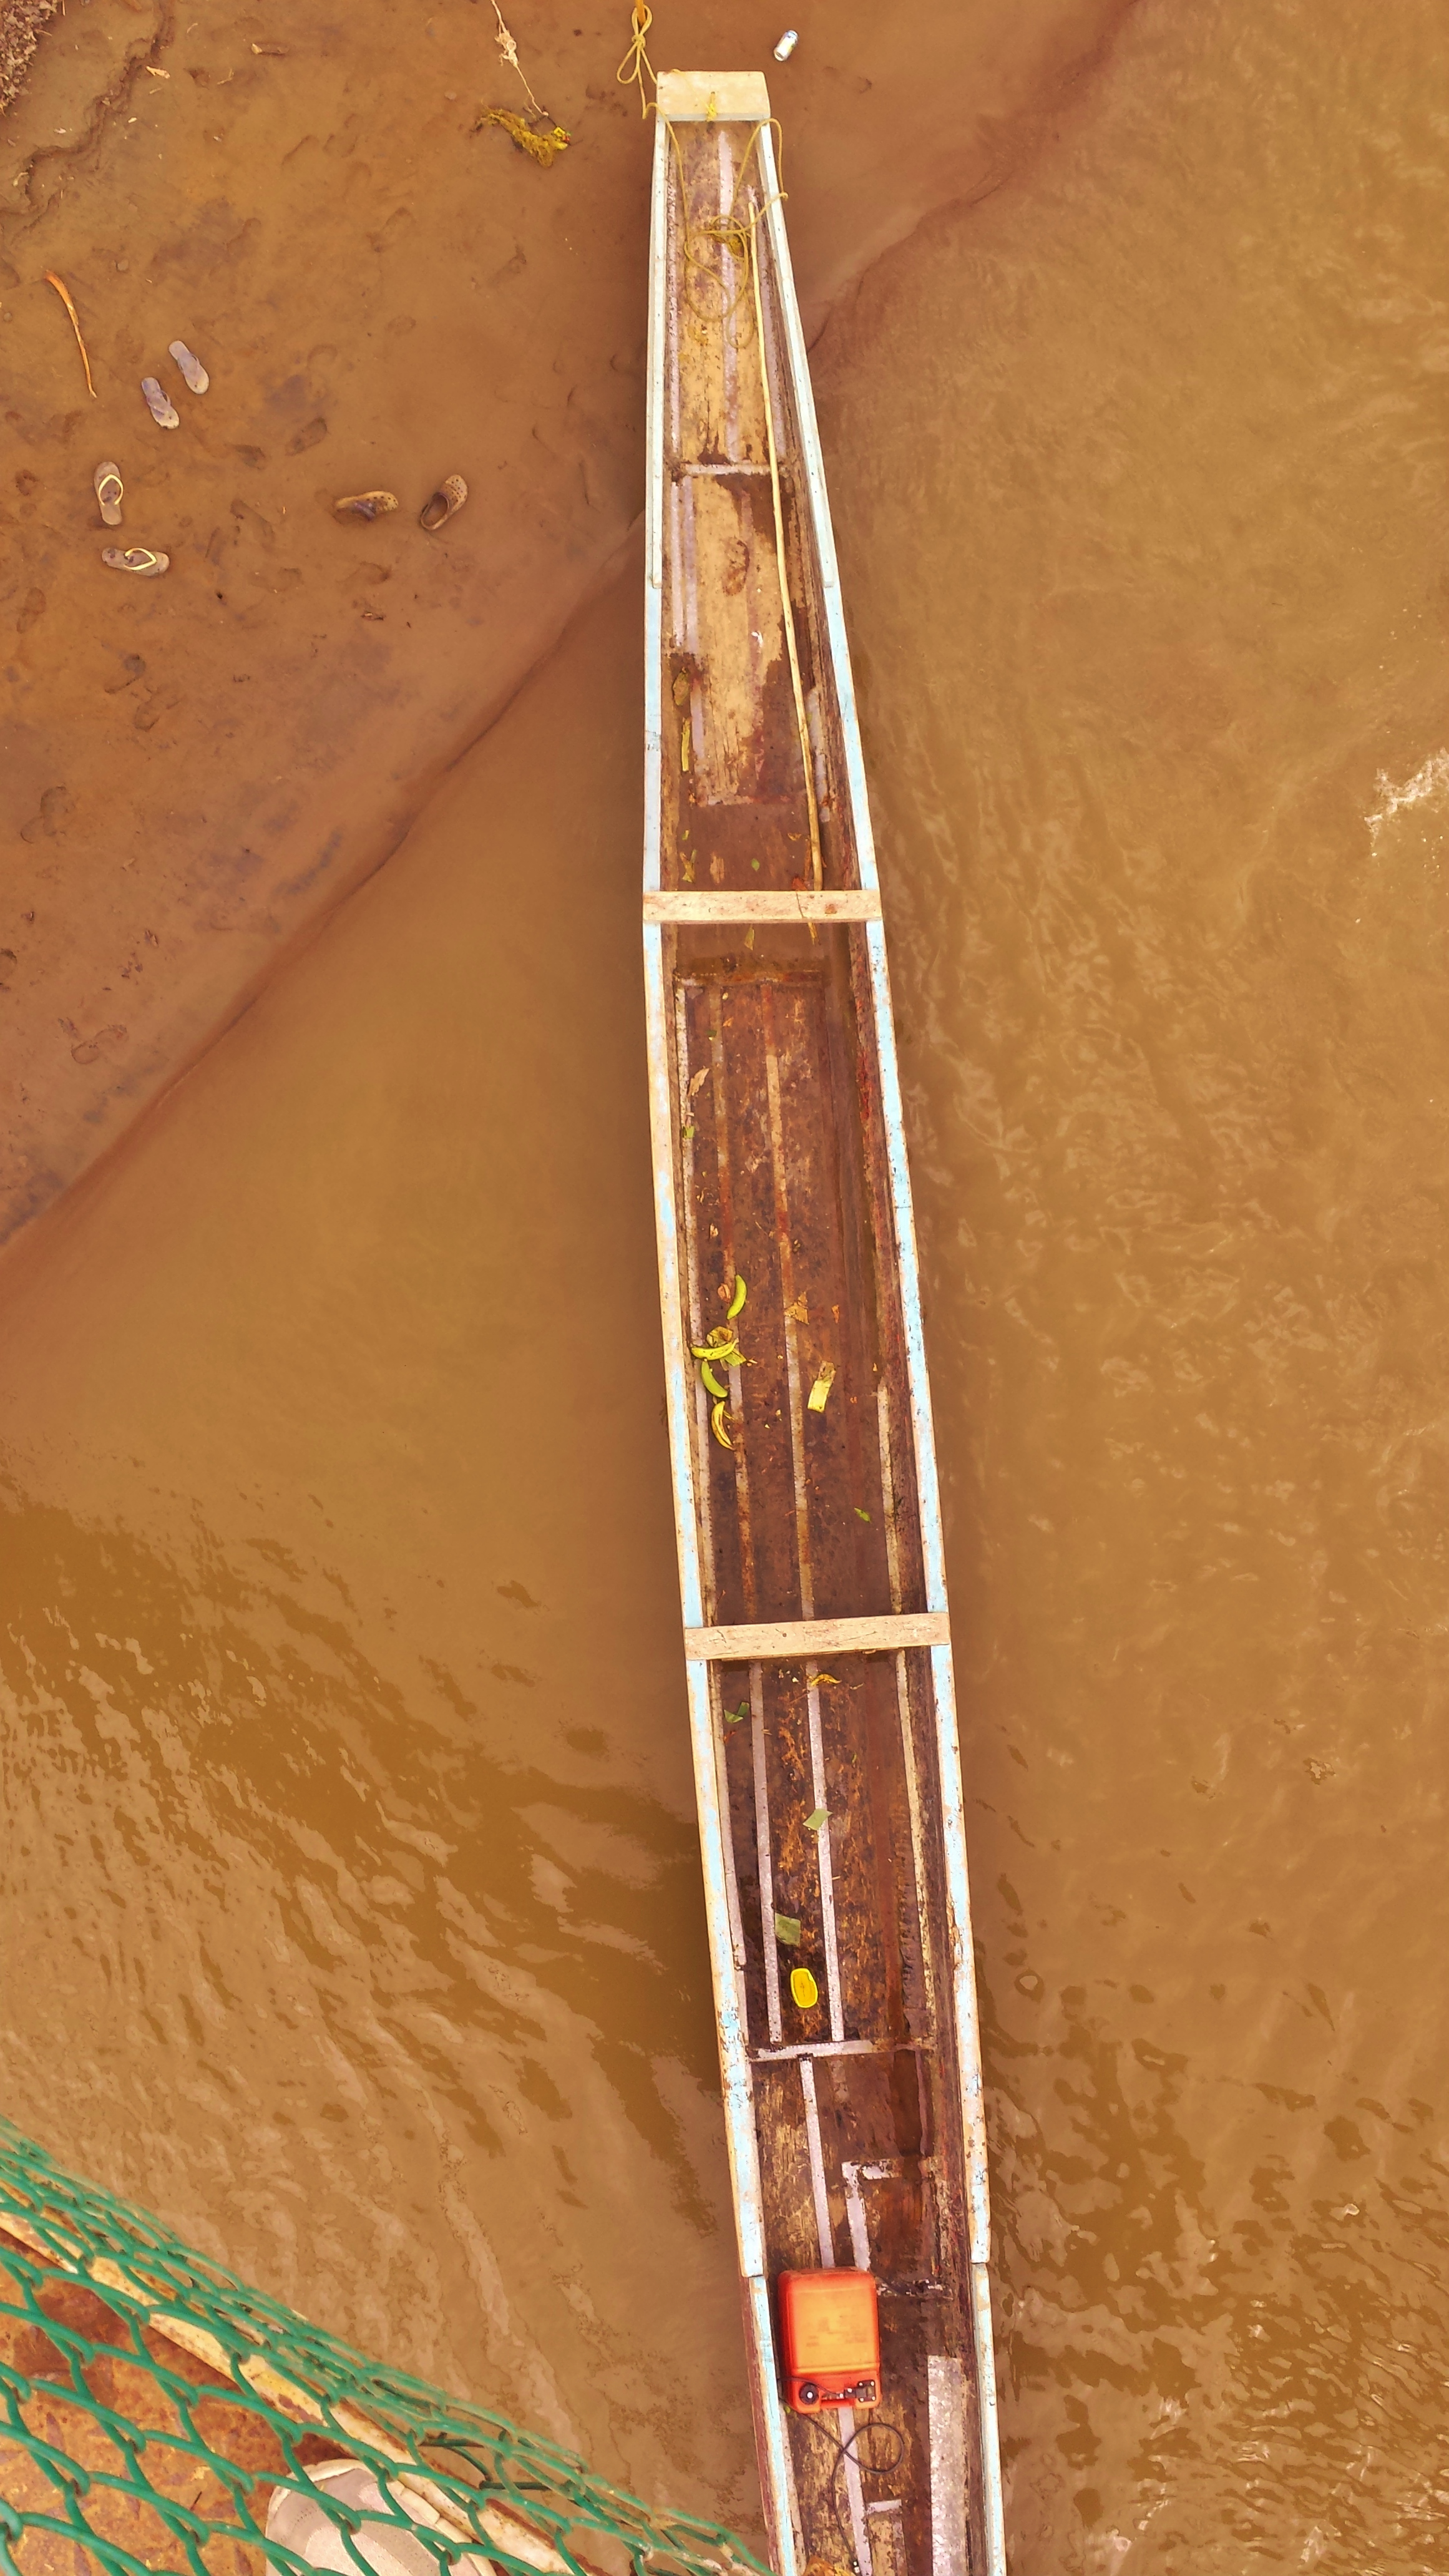 Aerial view of a canoe